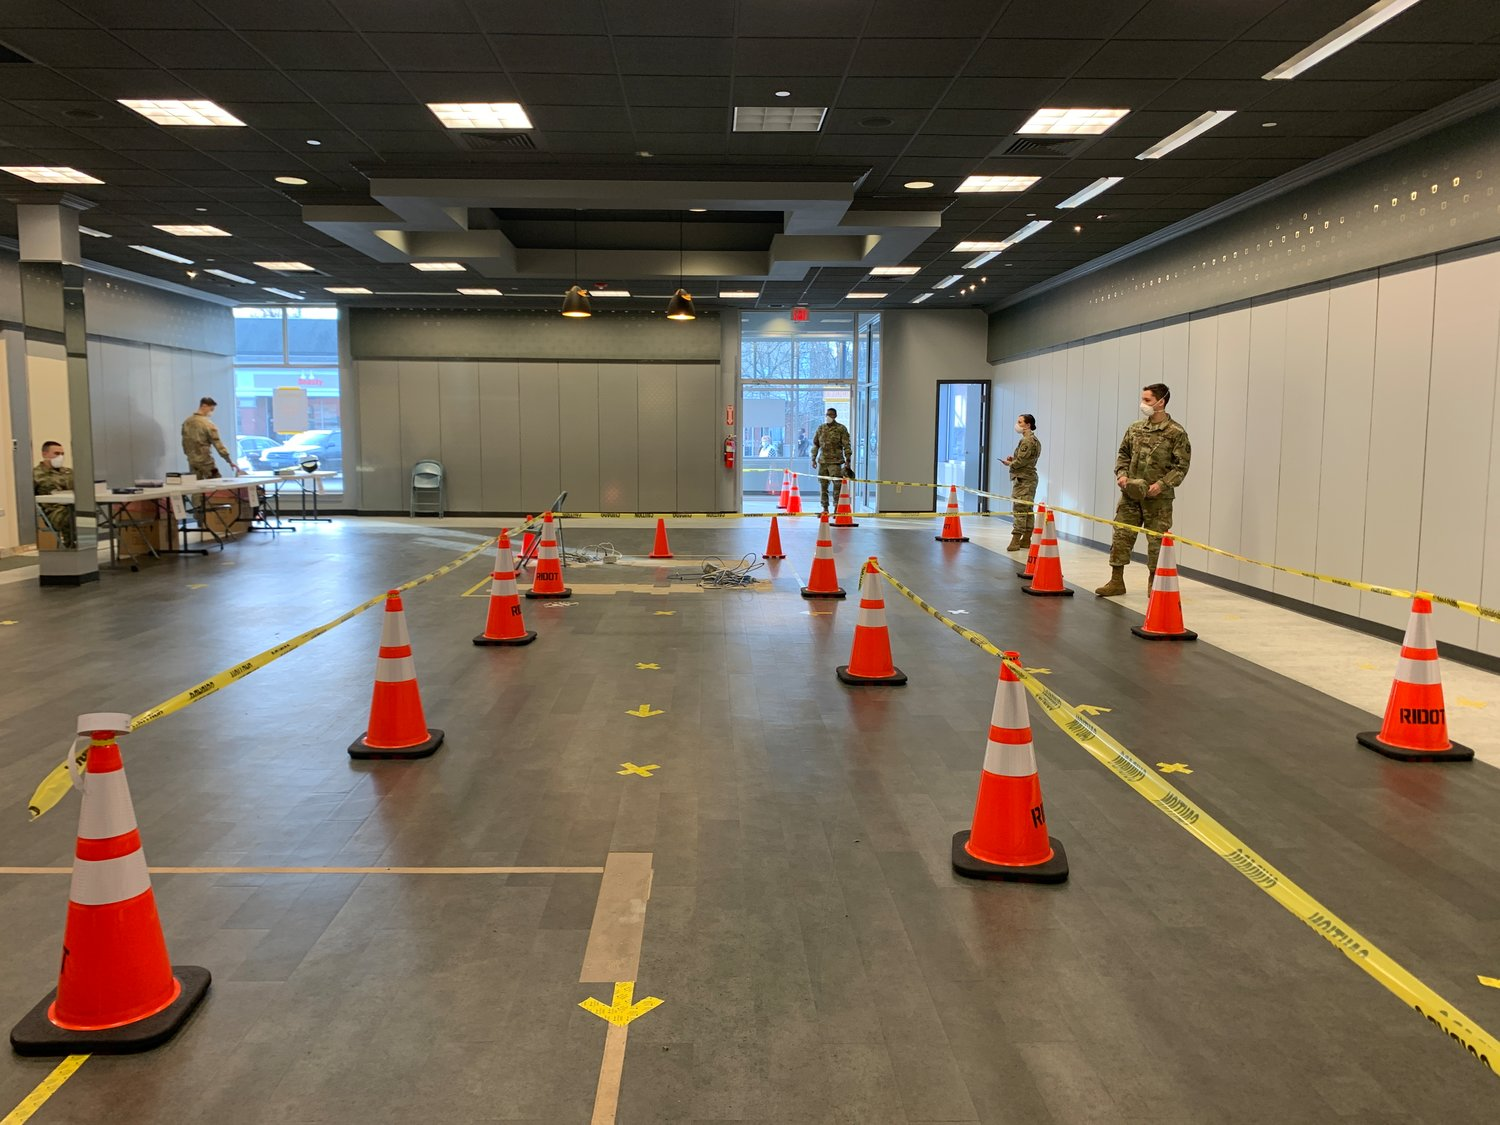 Members of the RI National Guard set up the asymptomatic rapid testing site in the Barrington Shopping Center on Tuesday morning.